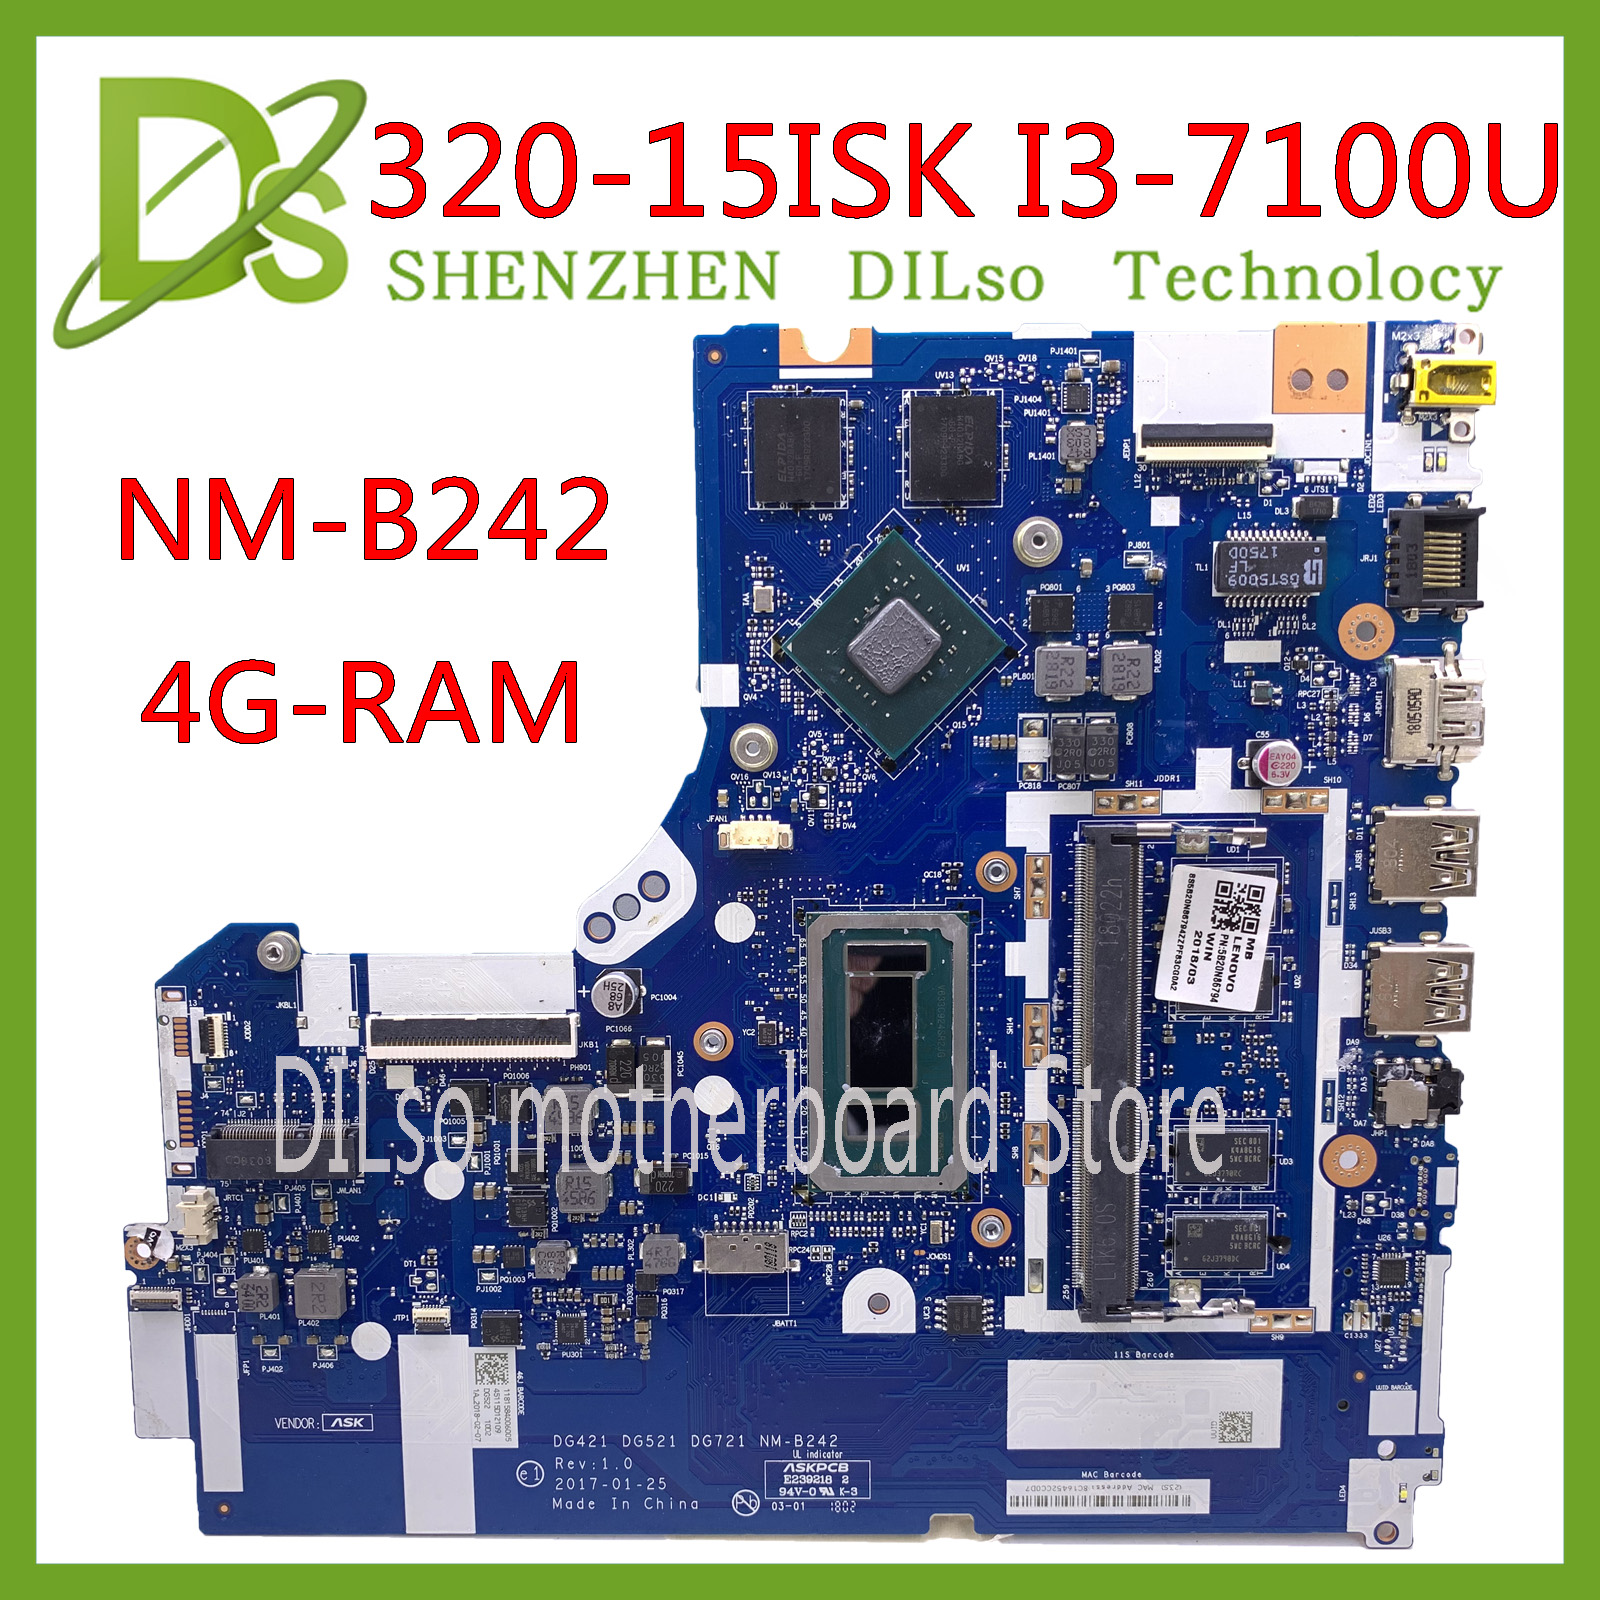 KEFU NM-B242 Mainboard For Lenovo 320-15ISK 520-15ISK Motherboard DG421 GD521 DG721 NM-B242  I3-7100U GT940MX 100% Test Original